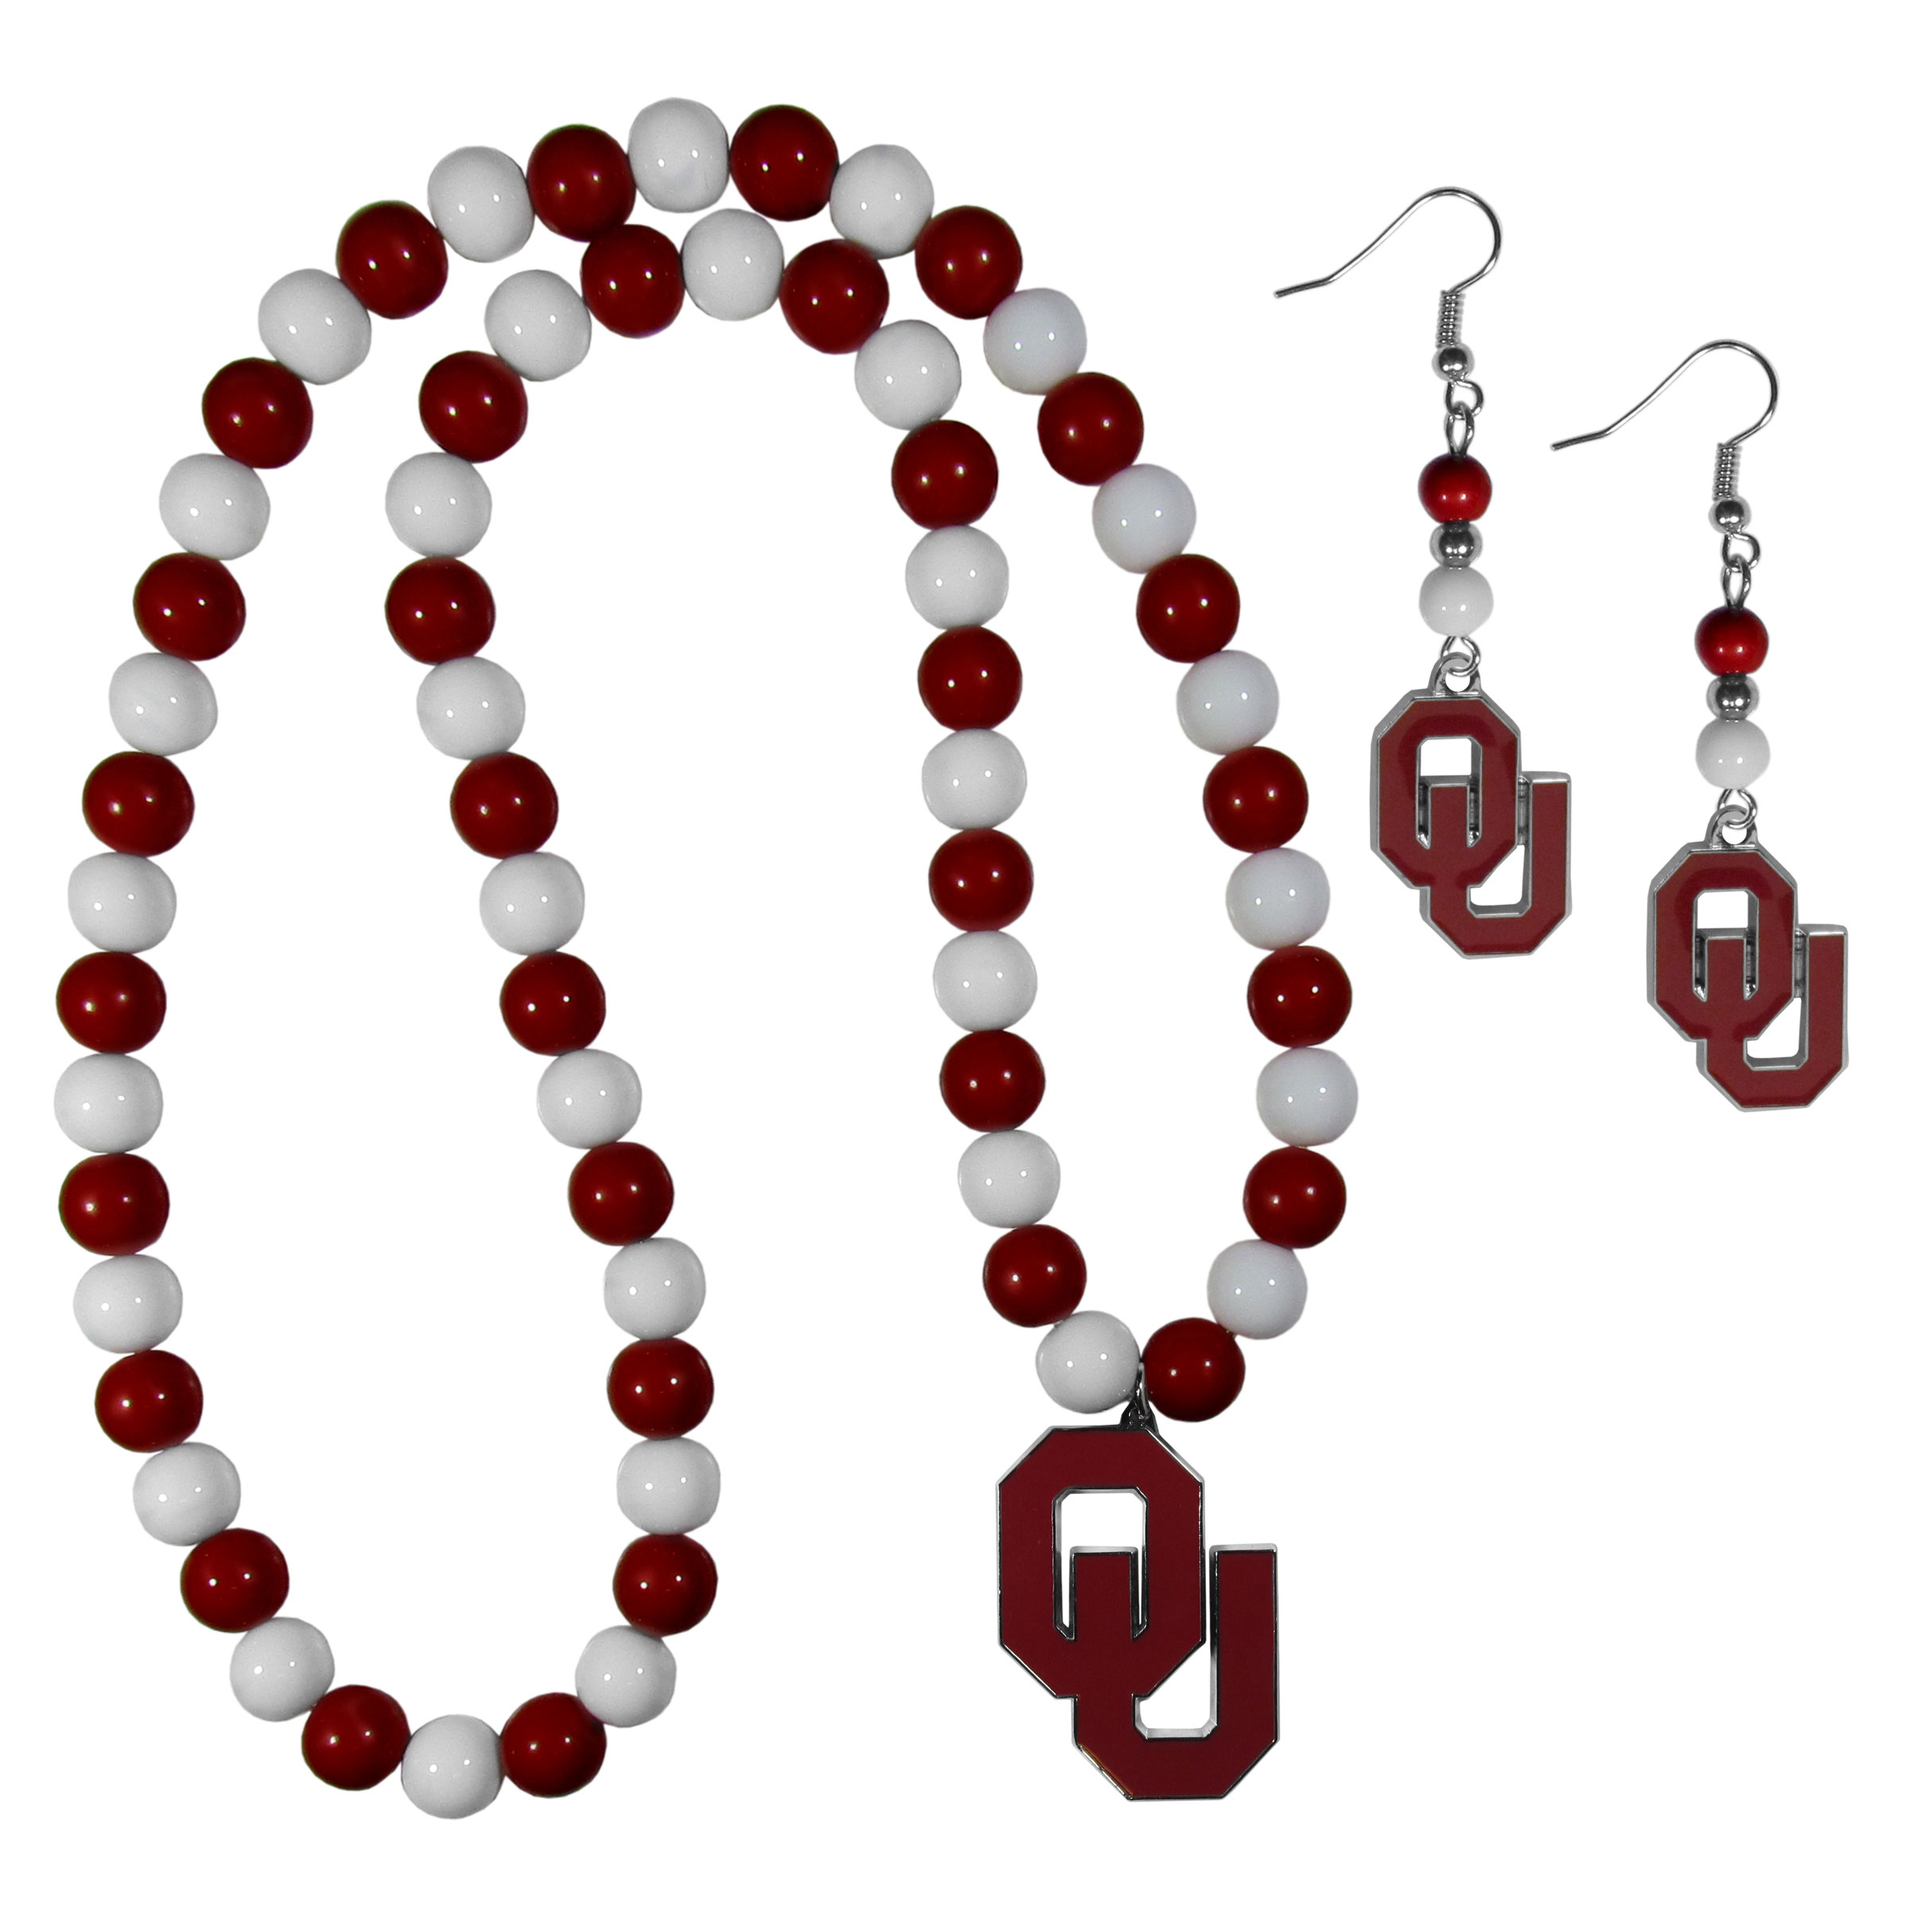 Oklahoma Sooners Fan Bead Earrings and Necklace Set - These fun and colorful Oklahoma Sooners fan bead jewelry pieces are an eyecatching way to show off your team spirit. The earrings feature hypoallergenic, nickel free fishhook post and 2 team colored beads with a beautifully carved team charm to finish this attractive dangle look. The mathcing bracelet has alternating team colored beads on a stretch cord and features a matching team charm.